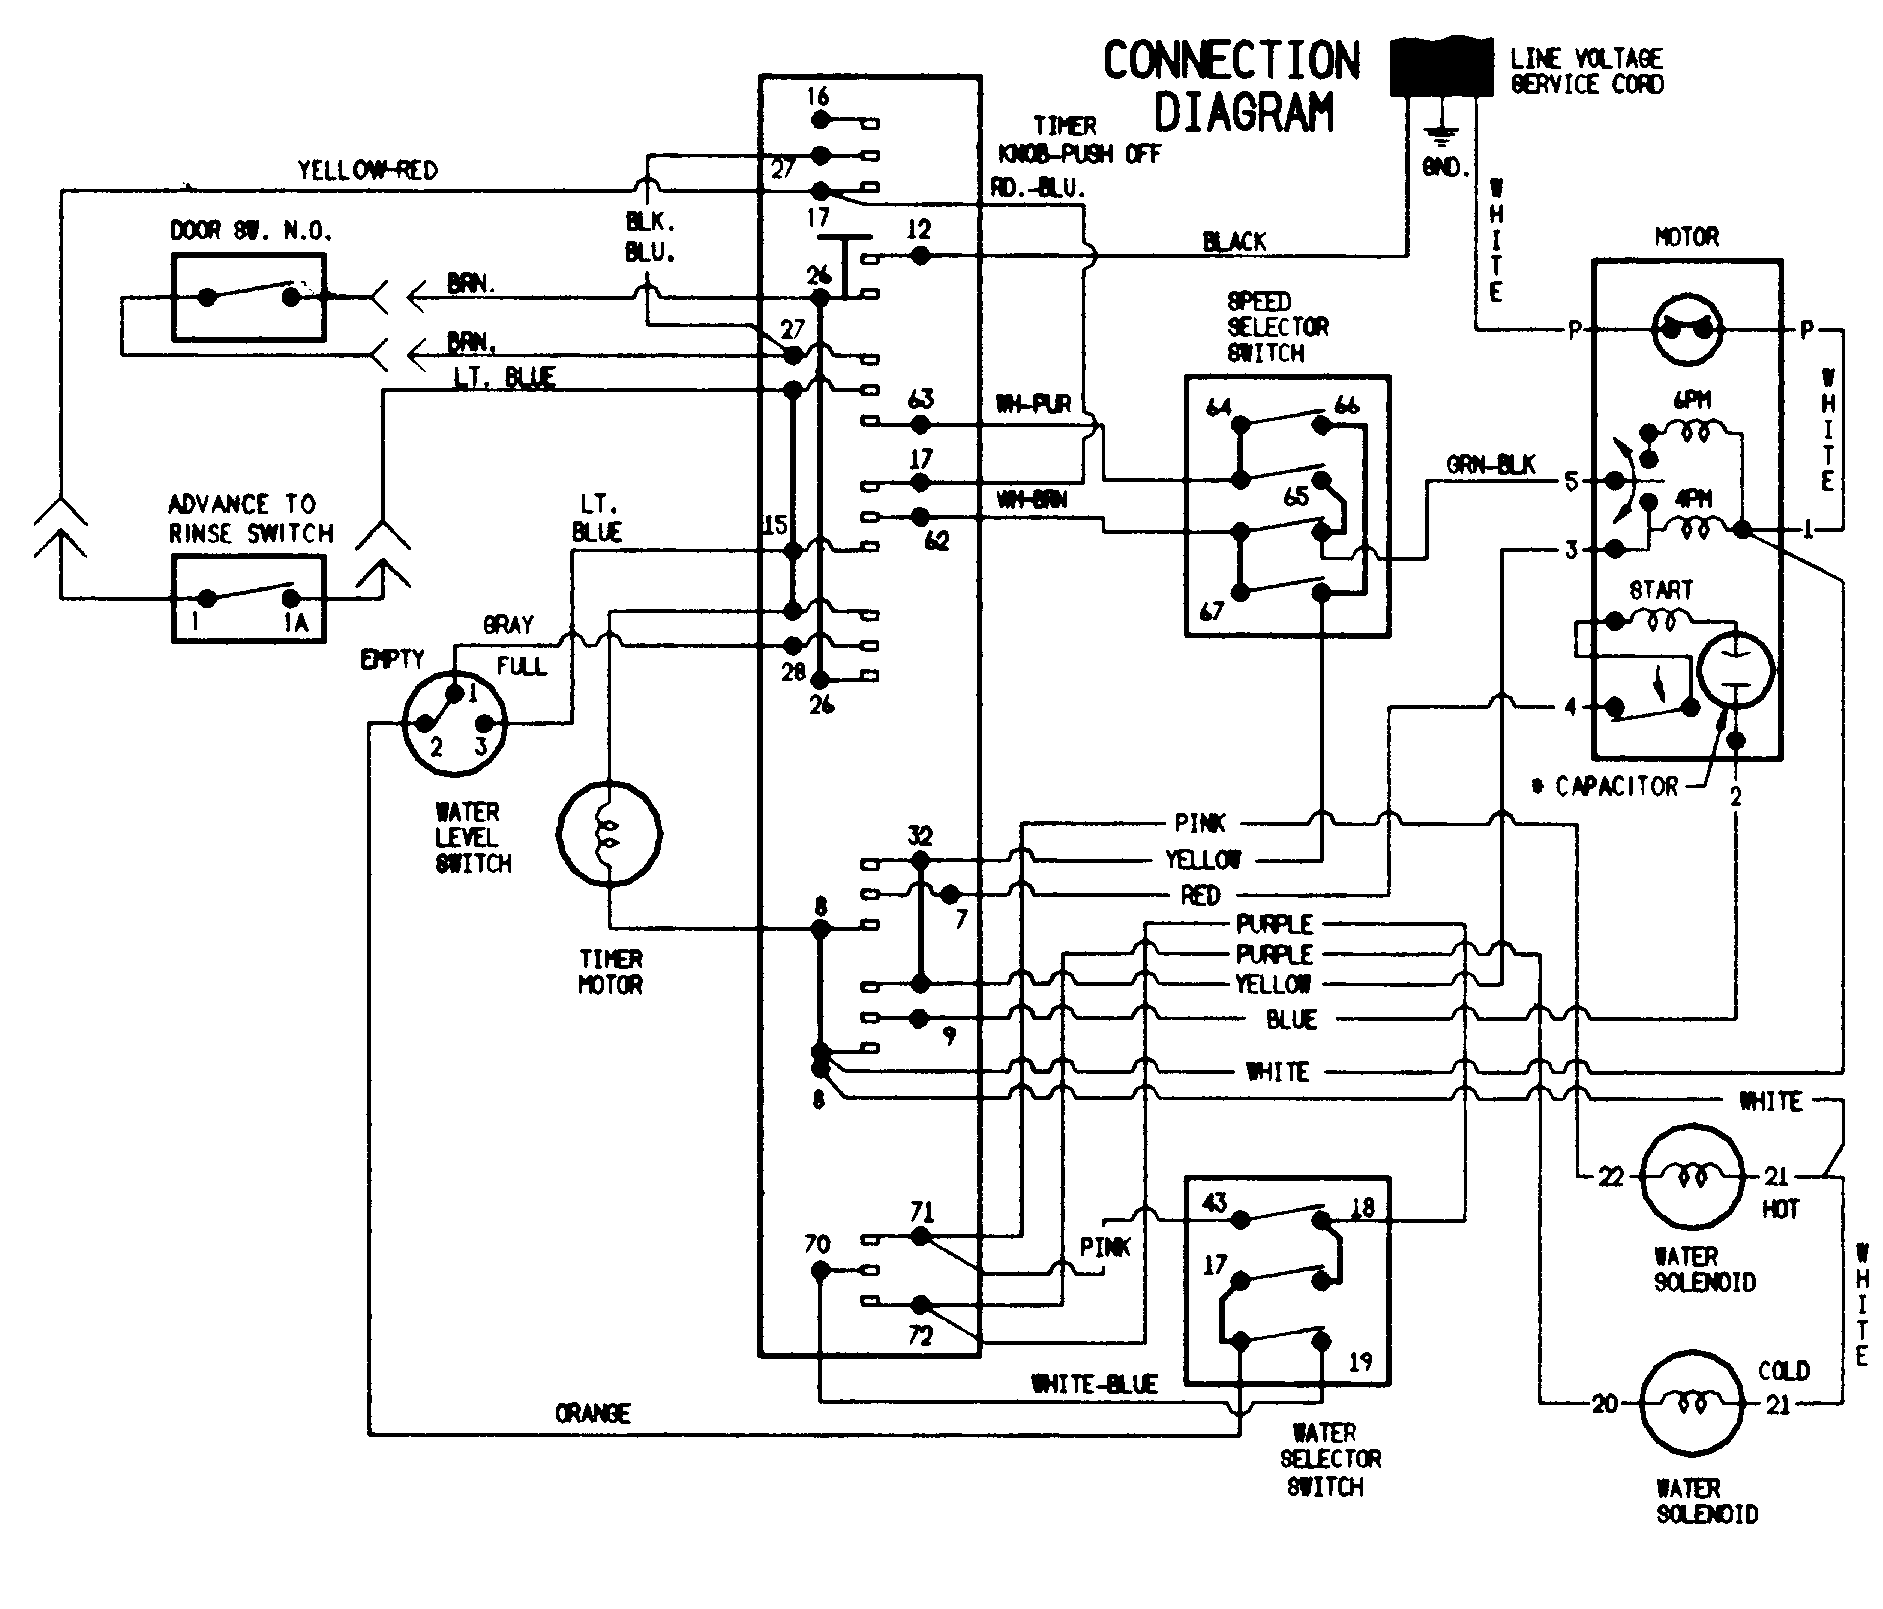 hight resolution of pressure washer motor wiring diagram free download wiring diagram pressure washer wiring harness